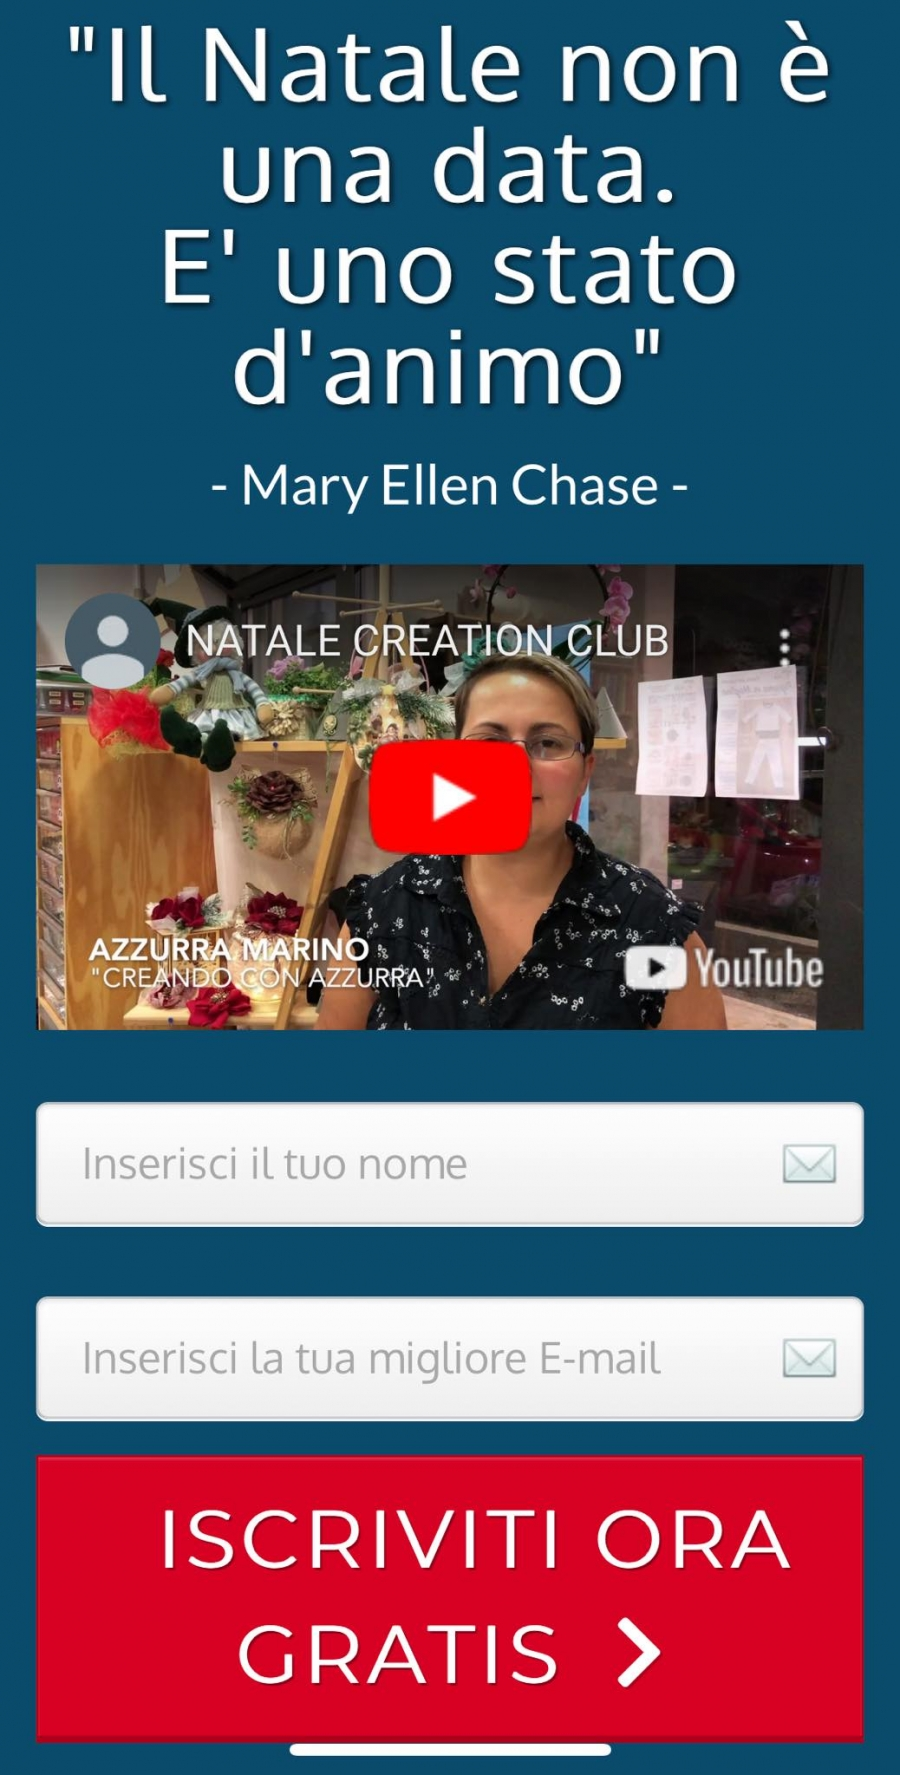 Natale Creation Club